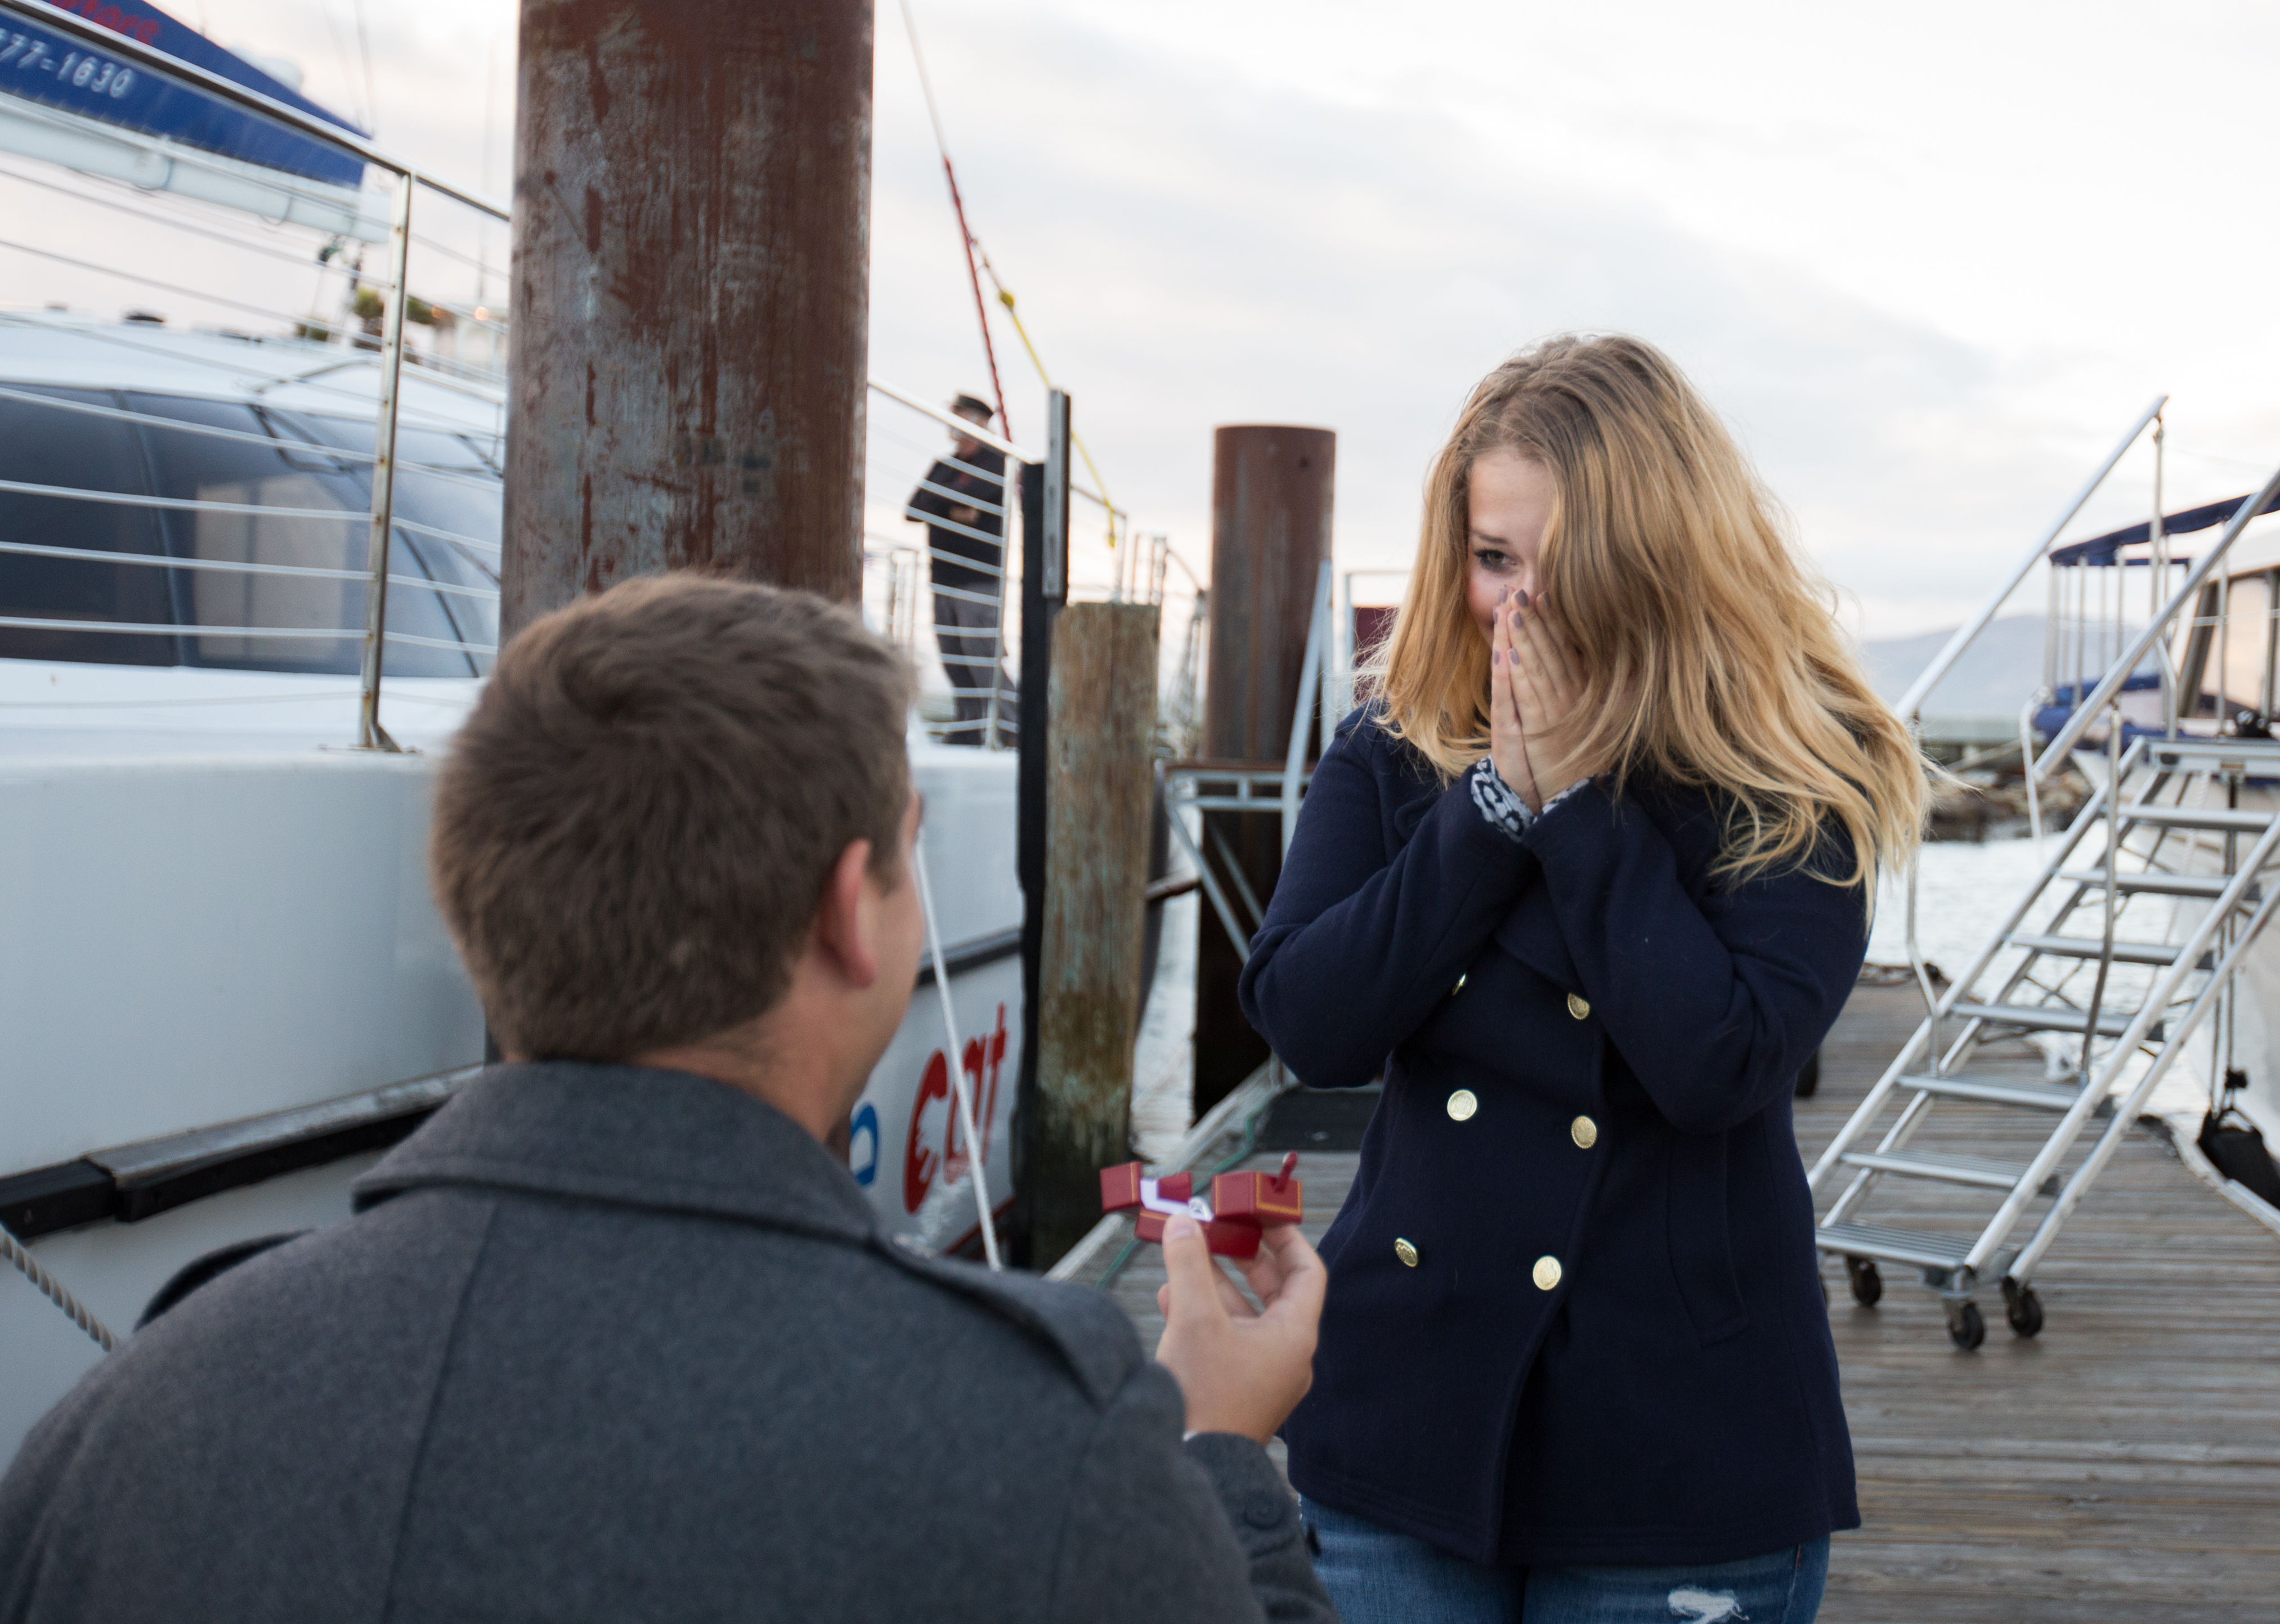 Image 12 of Tatyana and Steven | San Francisco Marrige Proposal